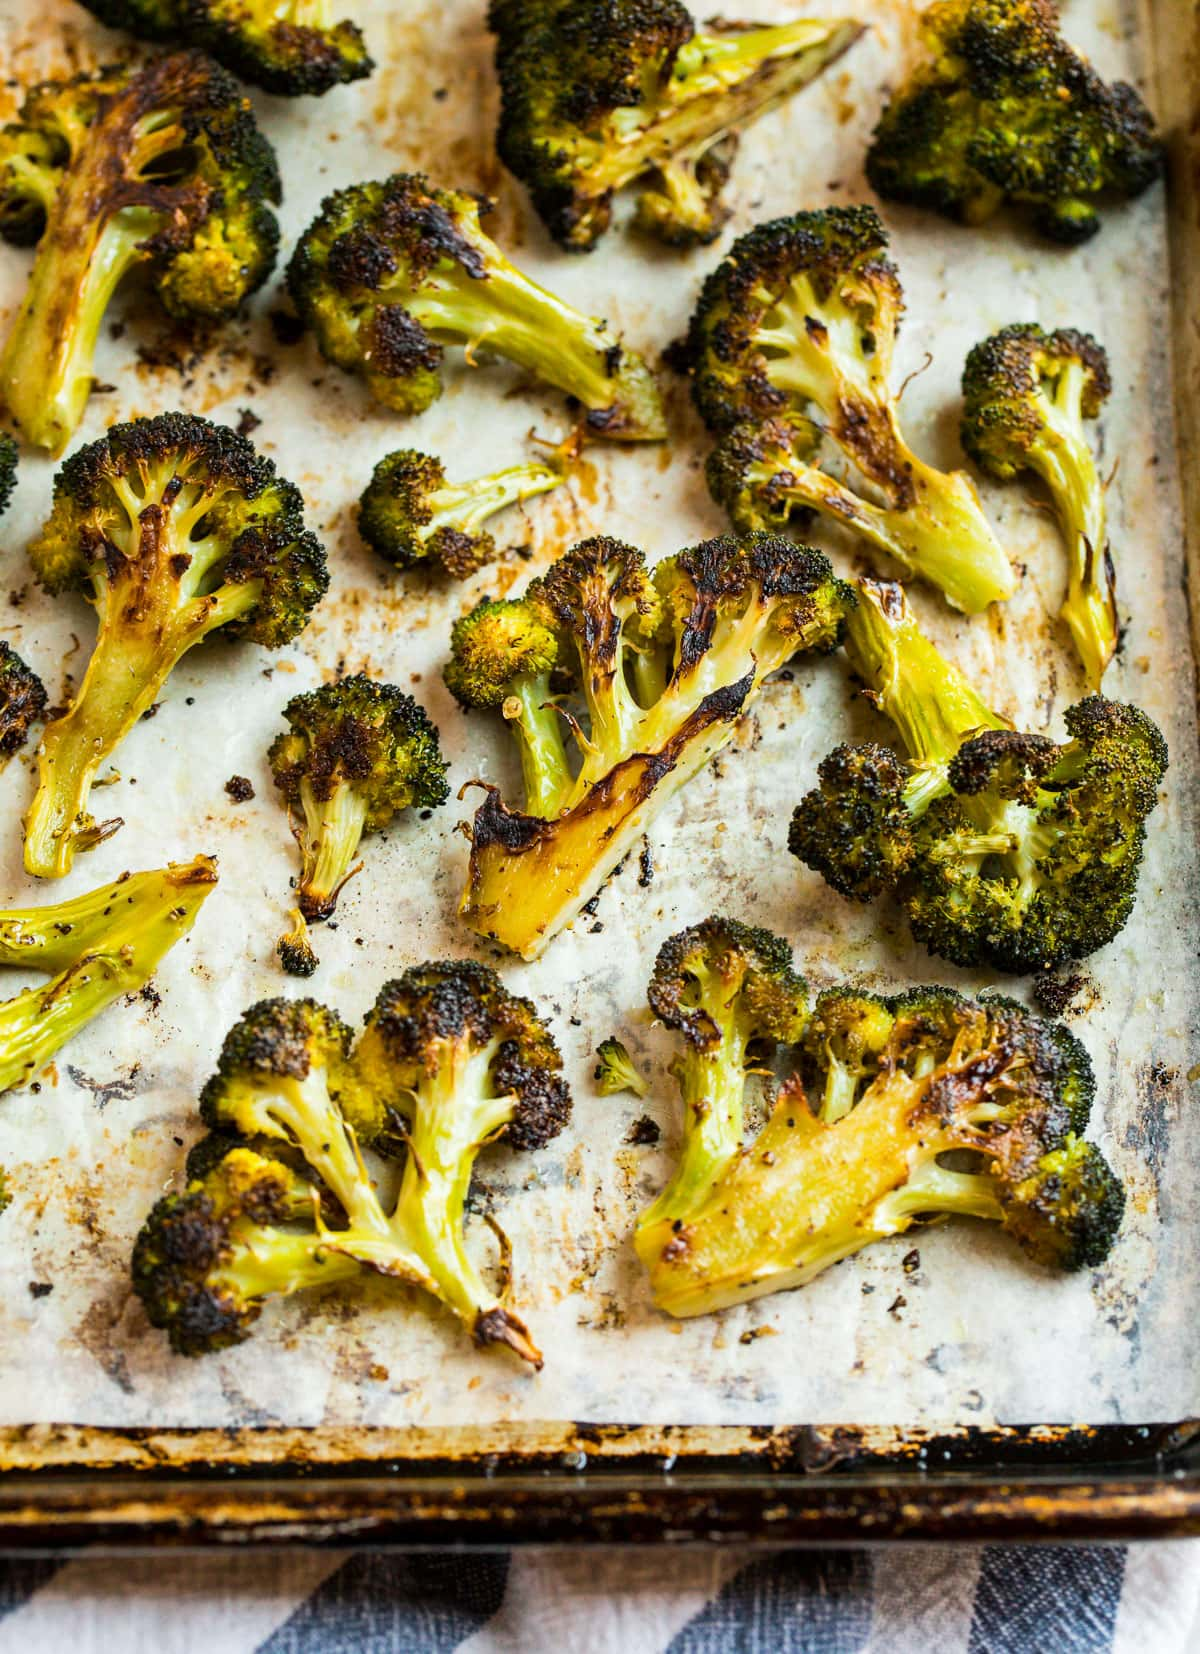 Crispy roasted broccoli on a sheet pan